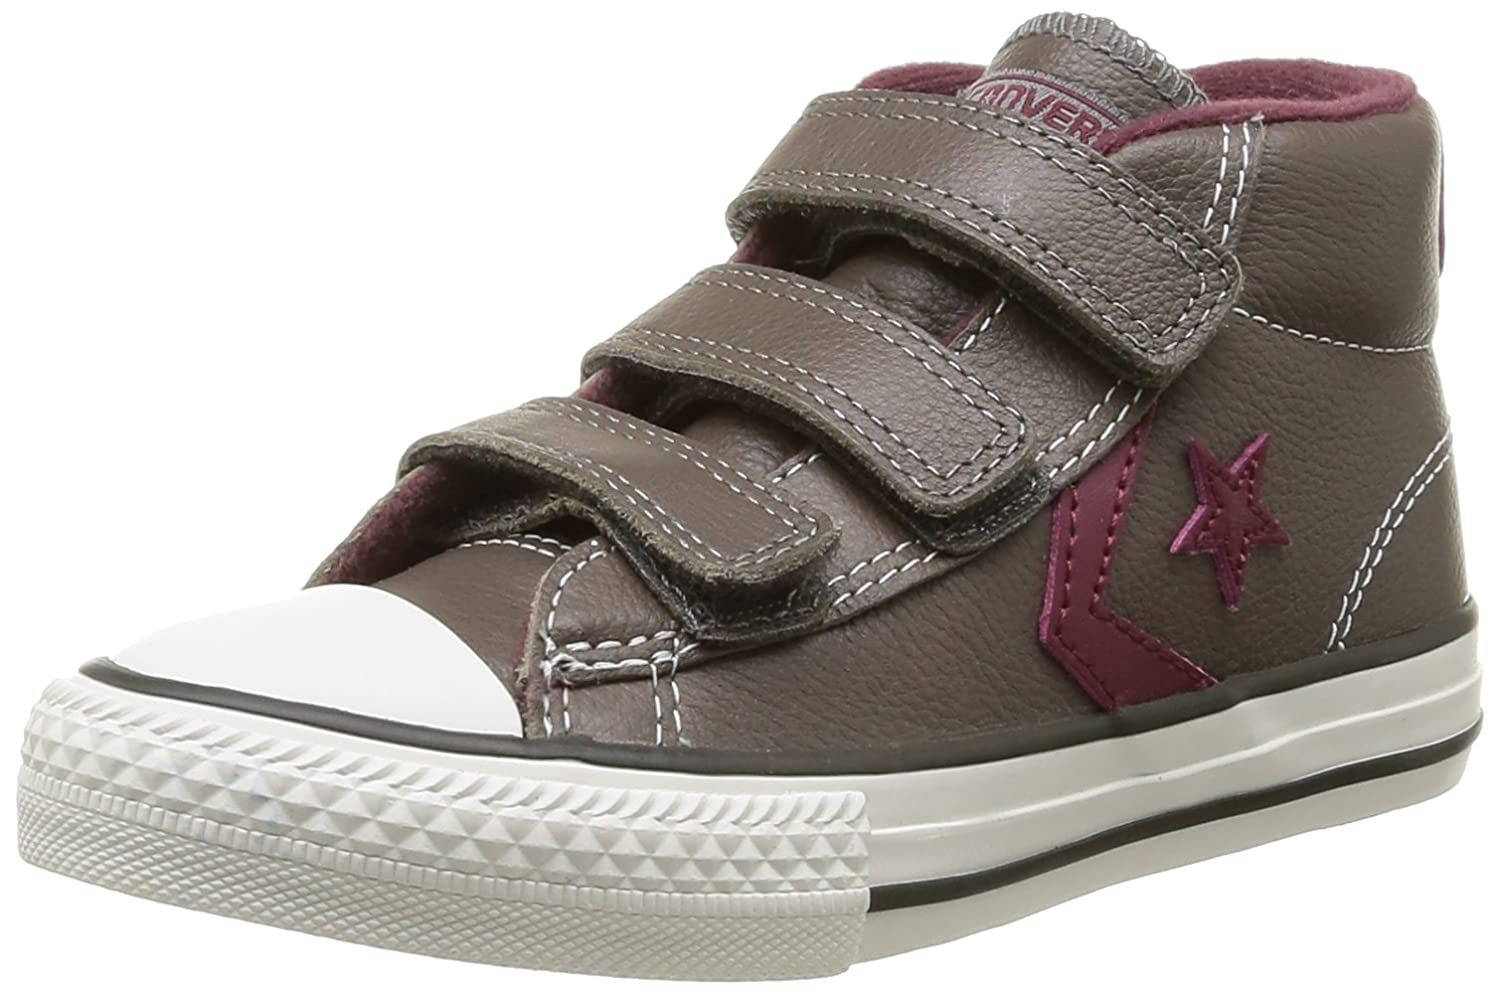 Converse Star Player V Leather Mid Zapatillas de Deporte de cuero Infantil